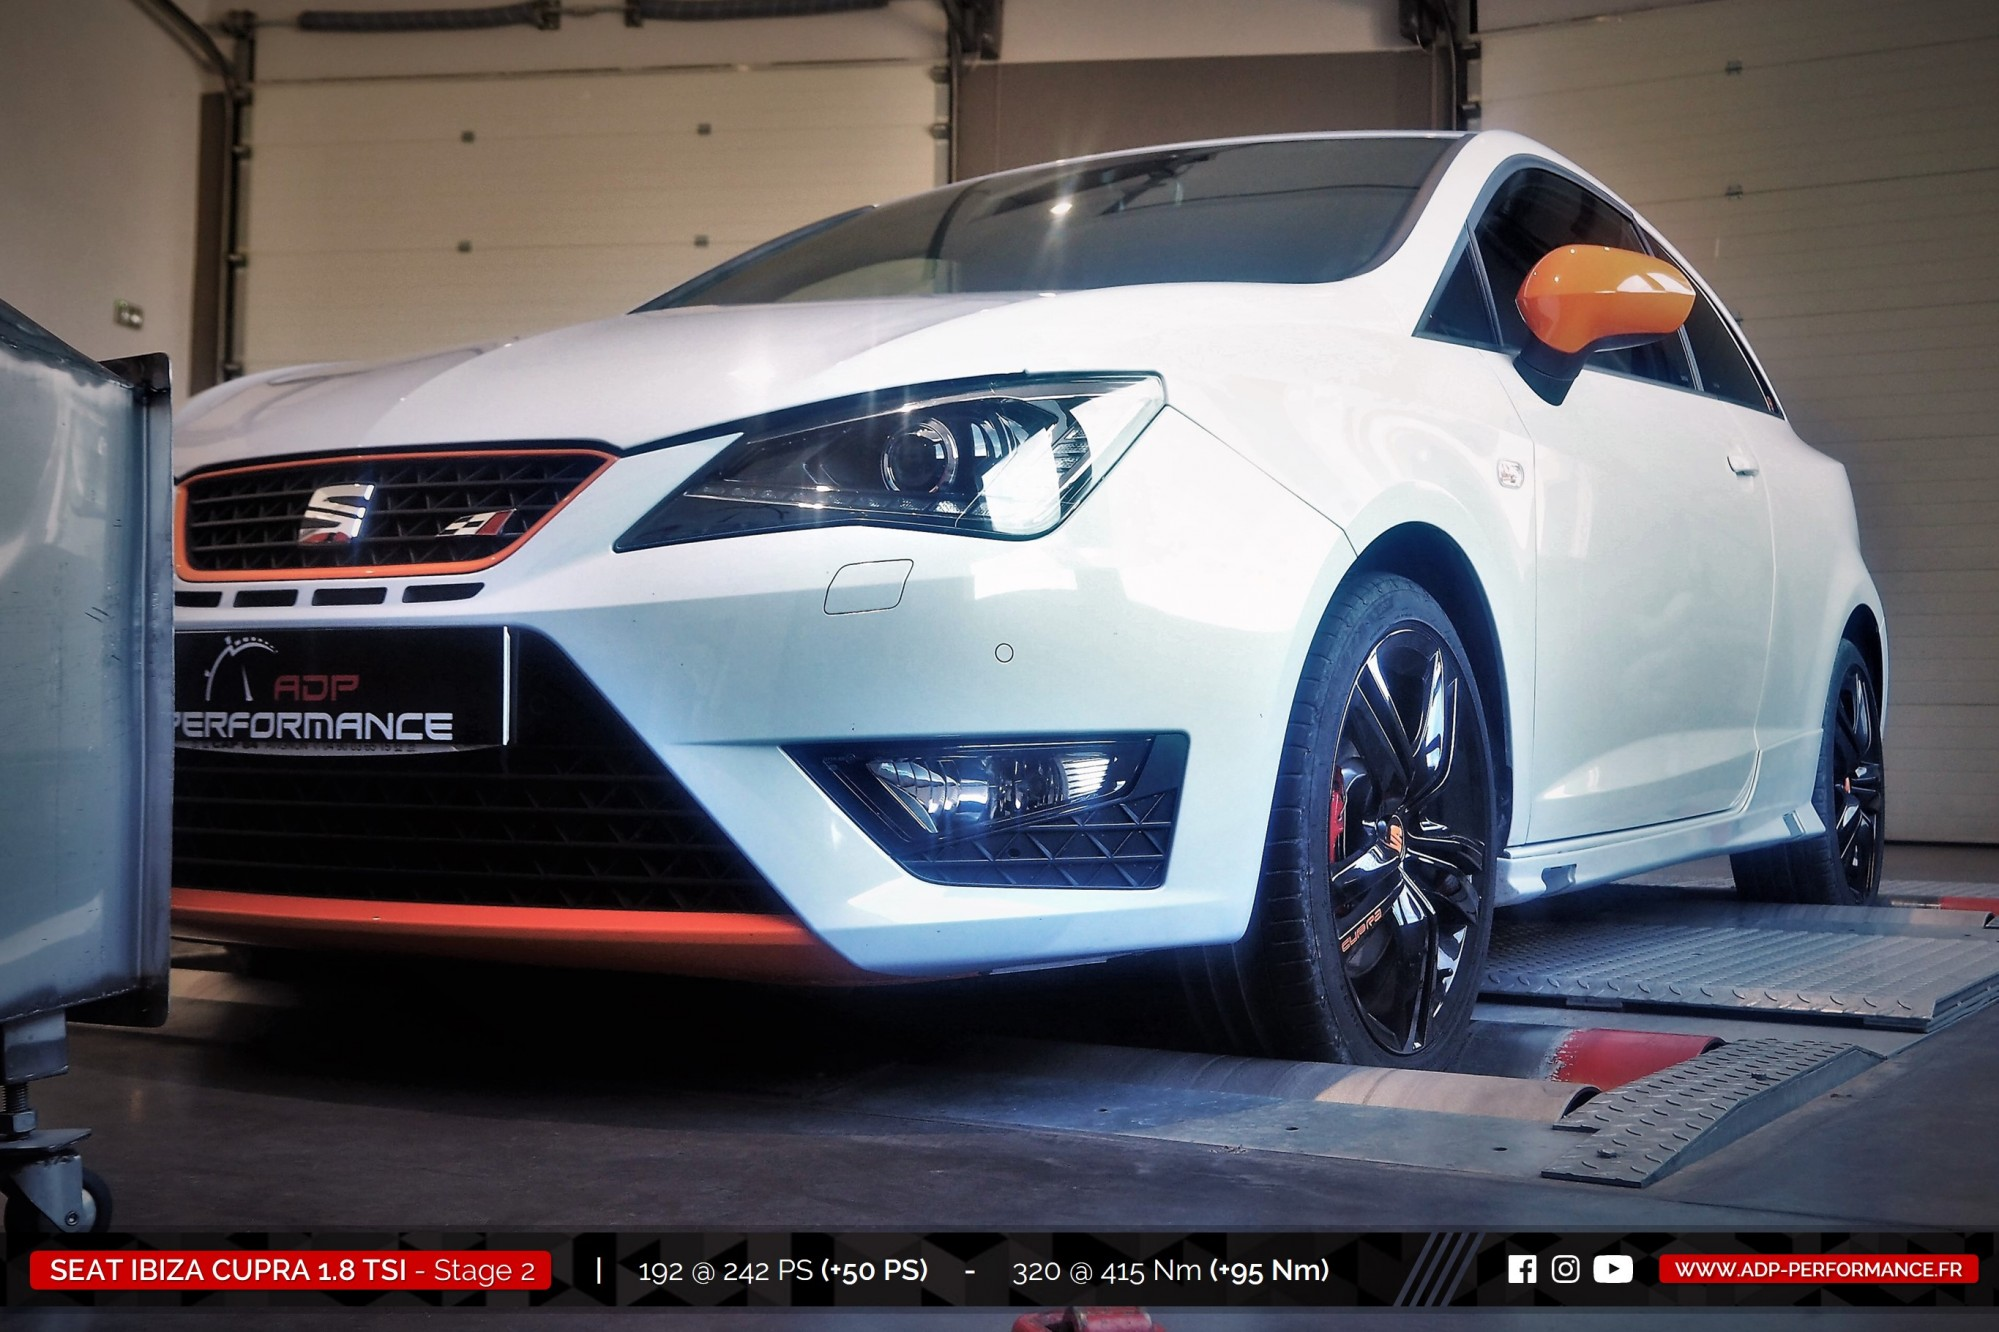 pr paration stage 2 seat ibiza cupra 1 8 tsi marseille. Black Bedroom Furniture Sets. Home Design Ideas